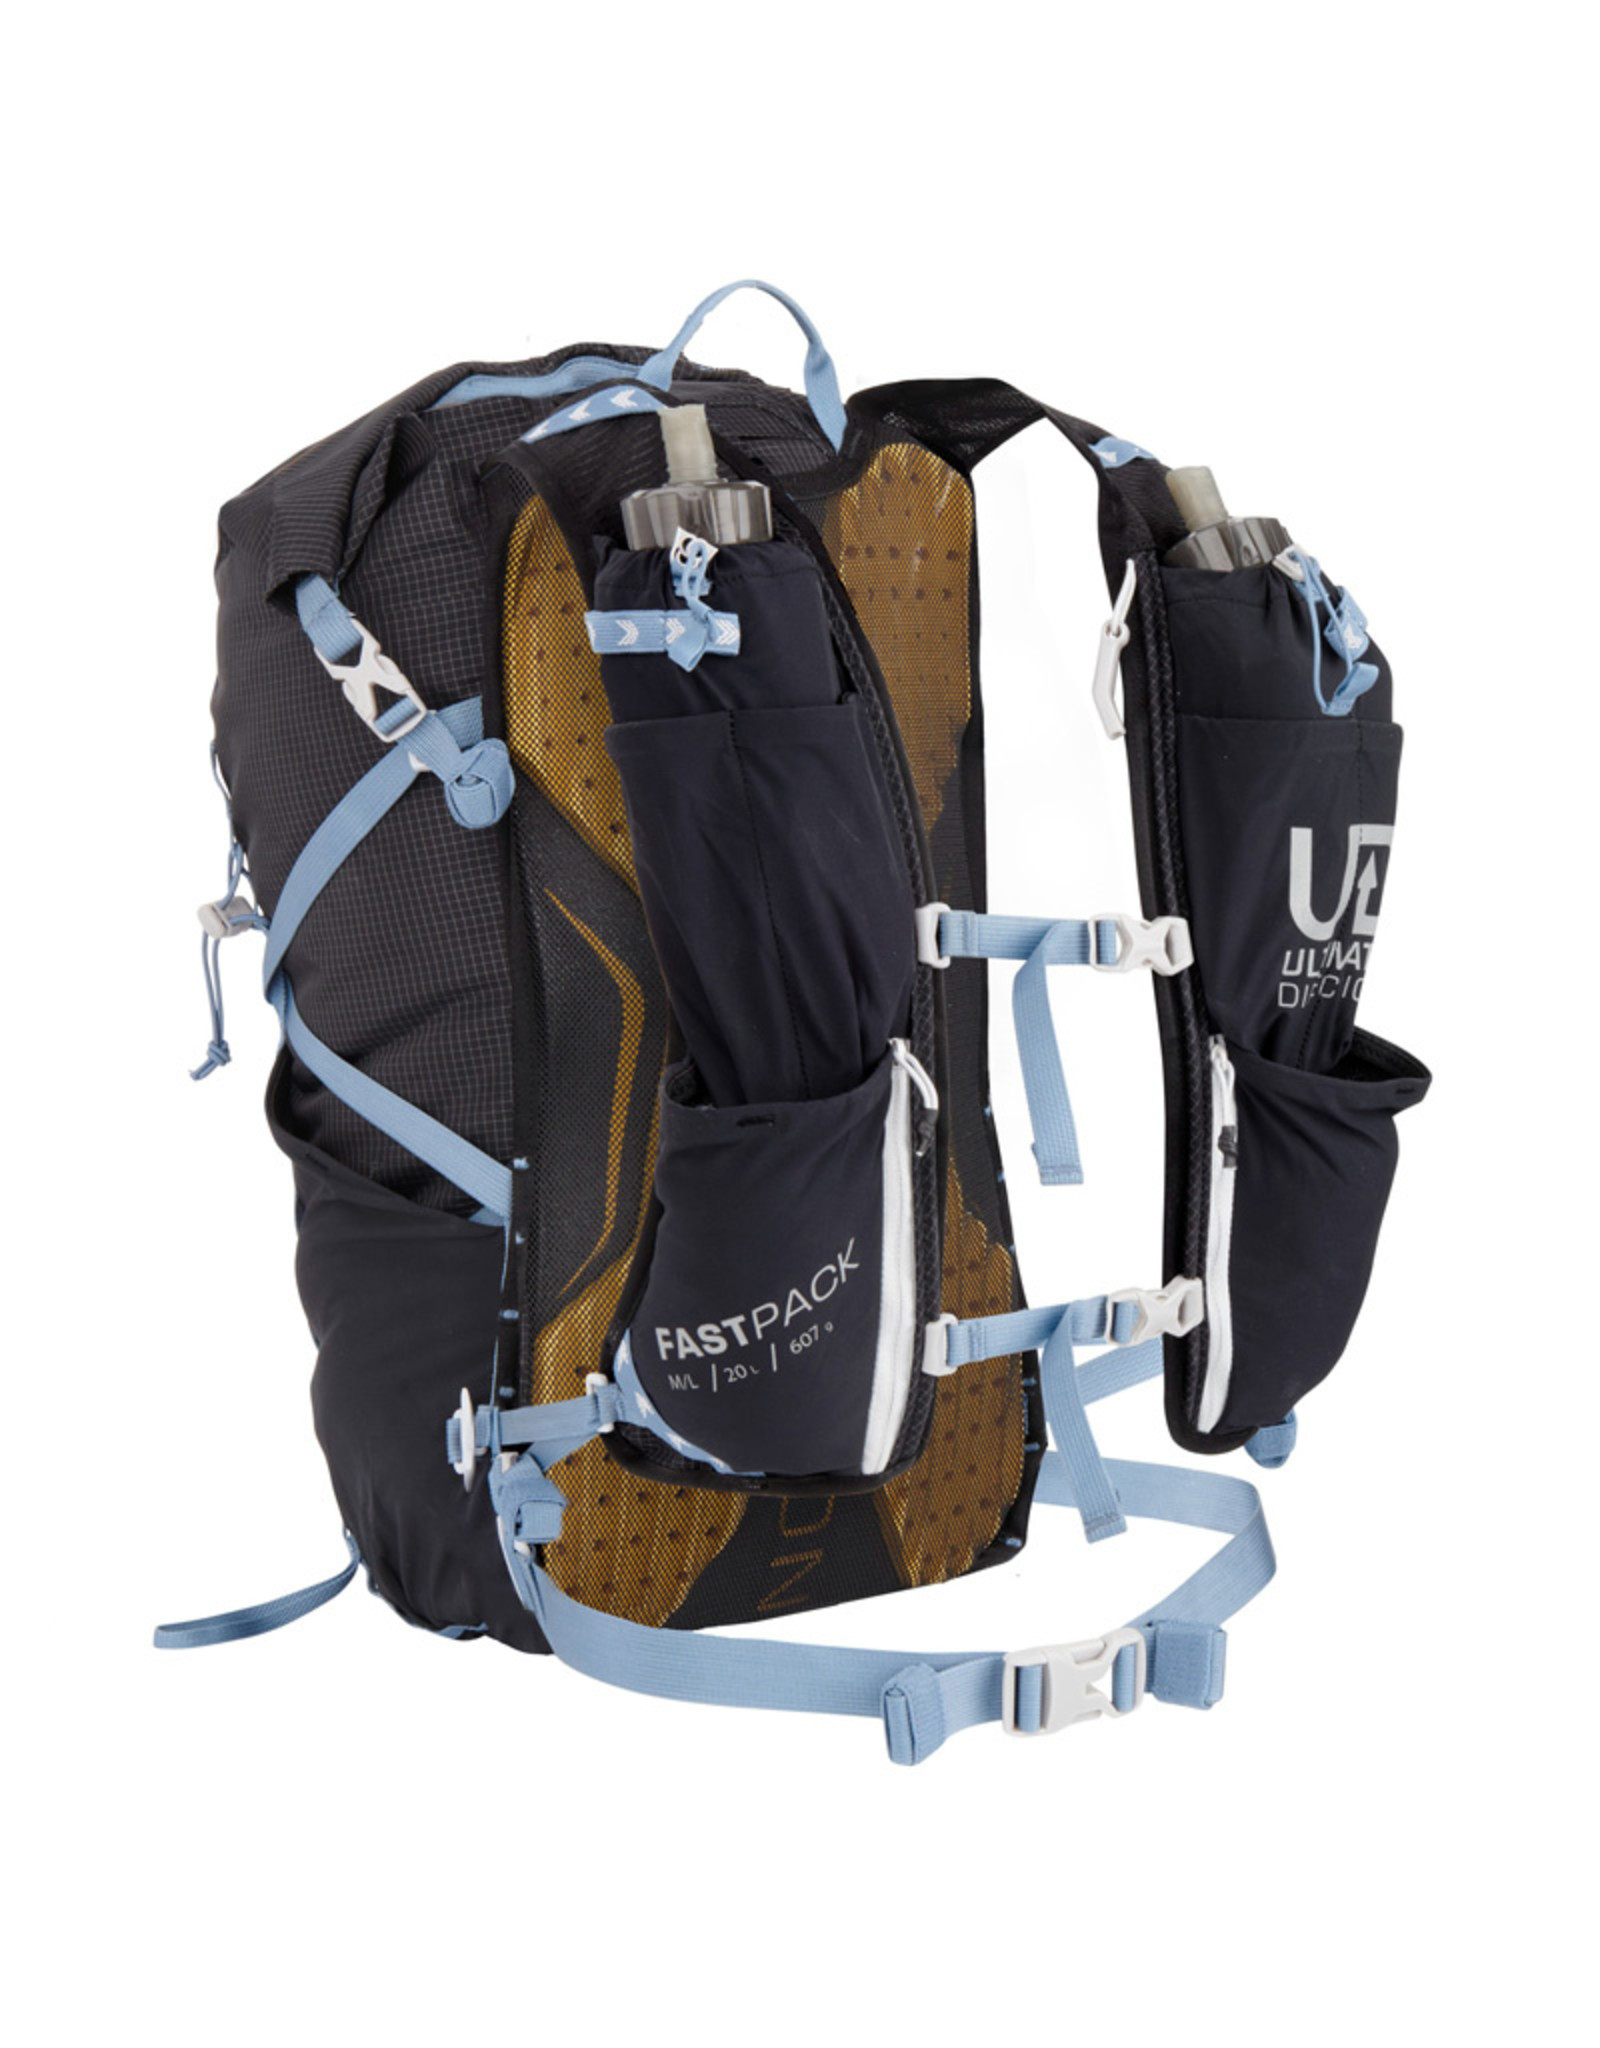 Ultimate Direction Fastpack 20 Sac A Dos